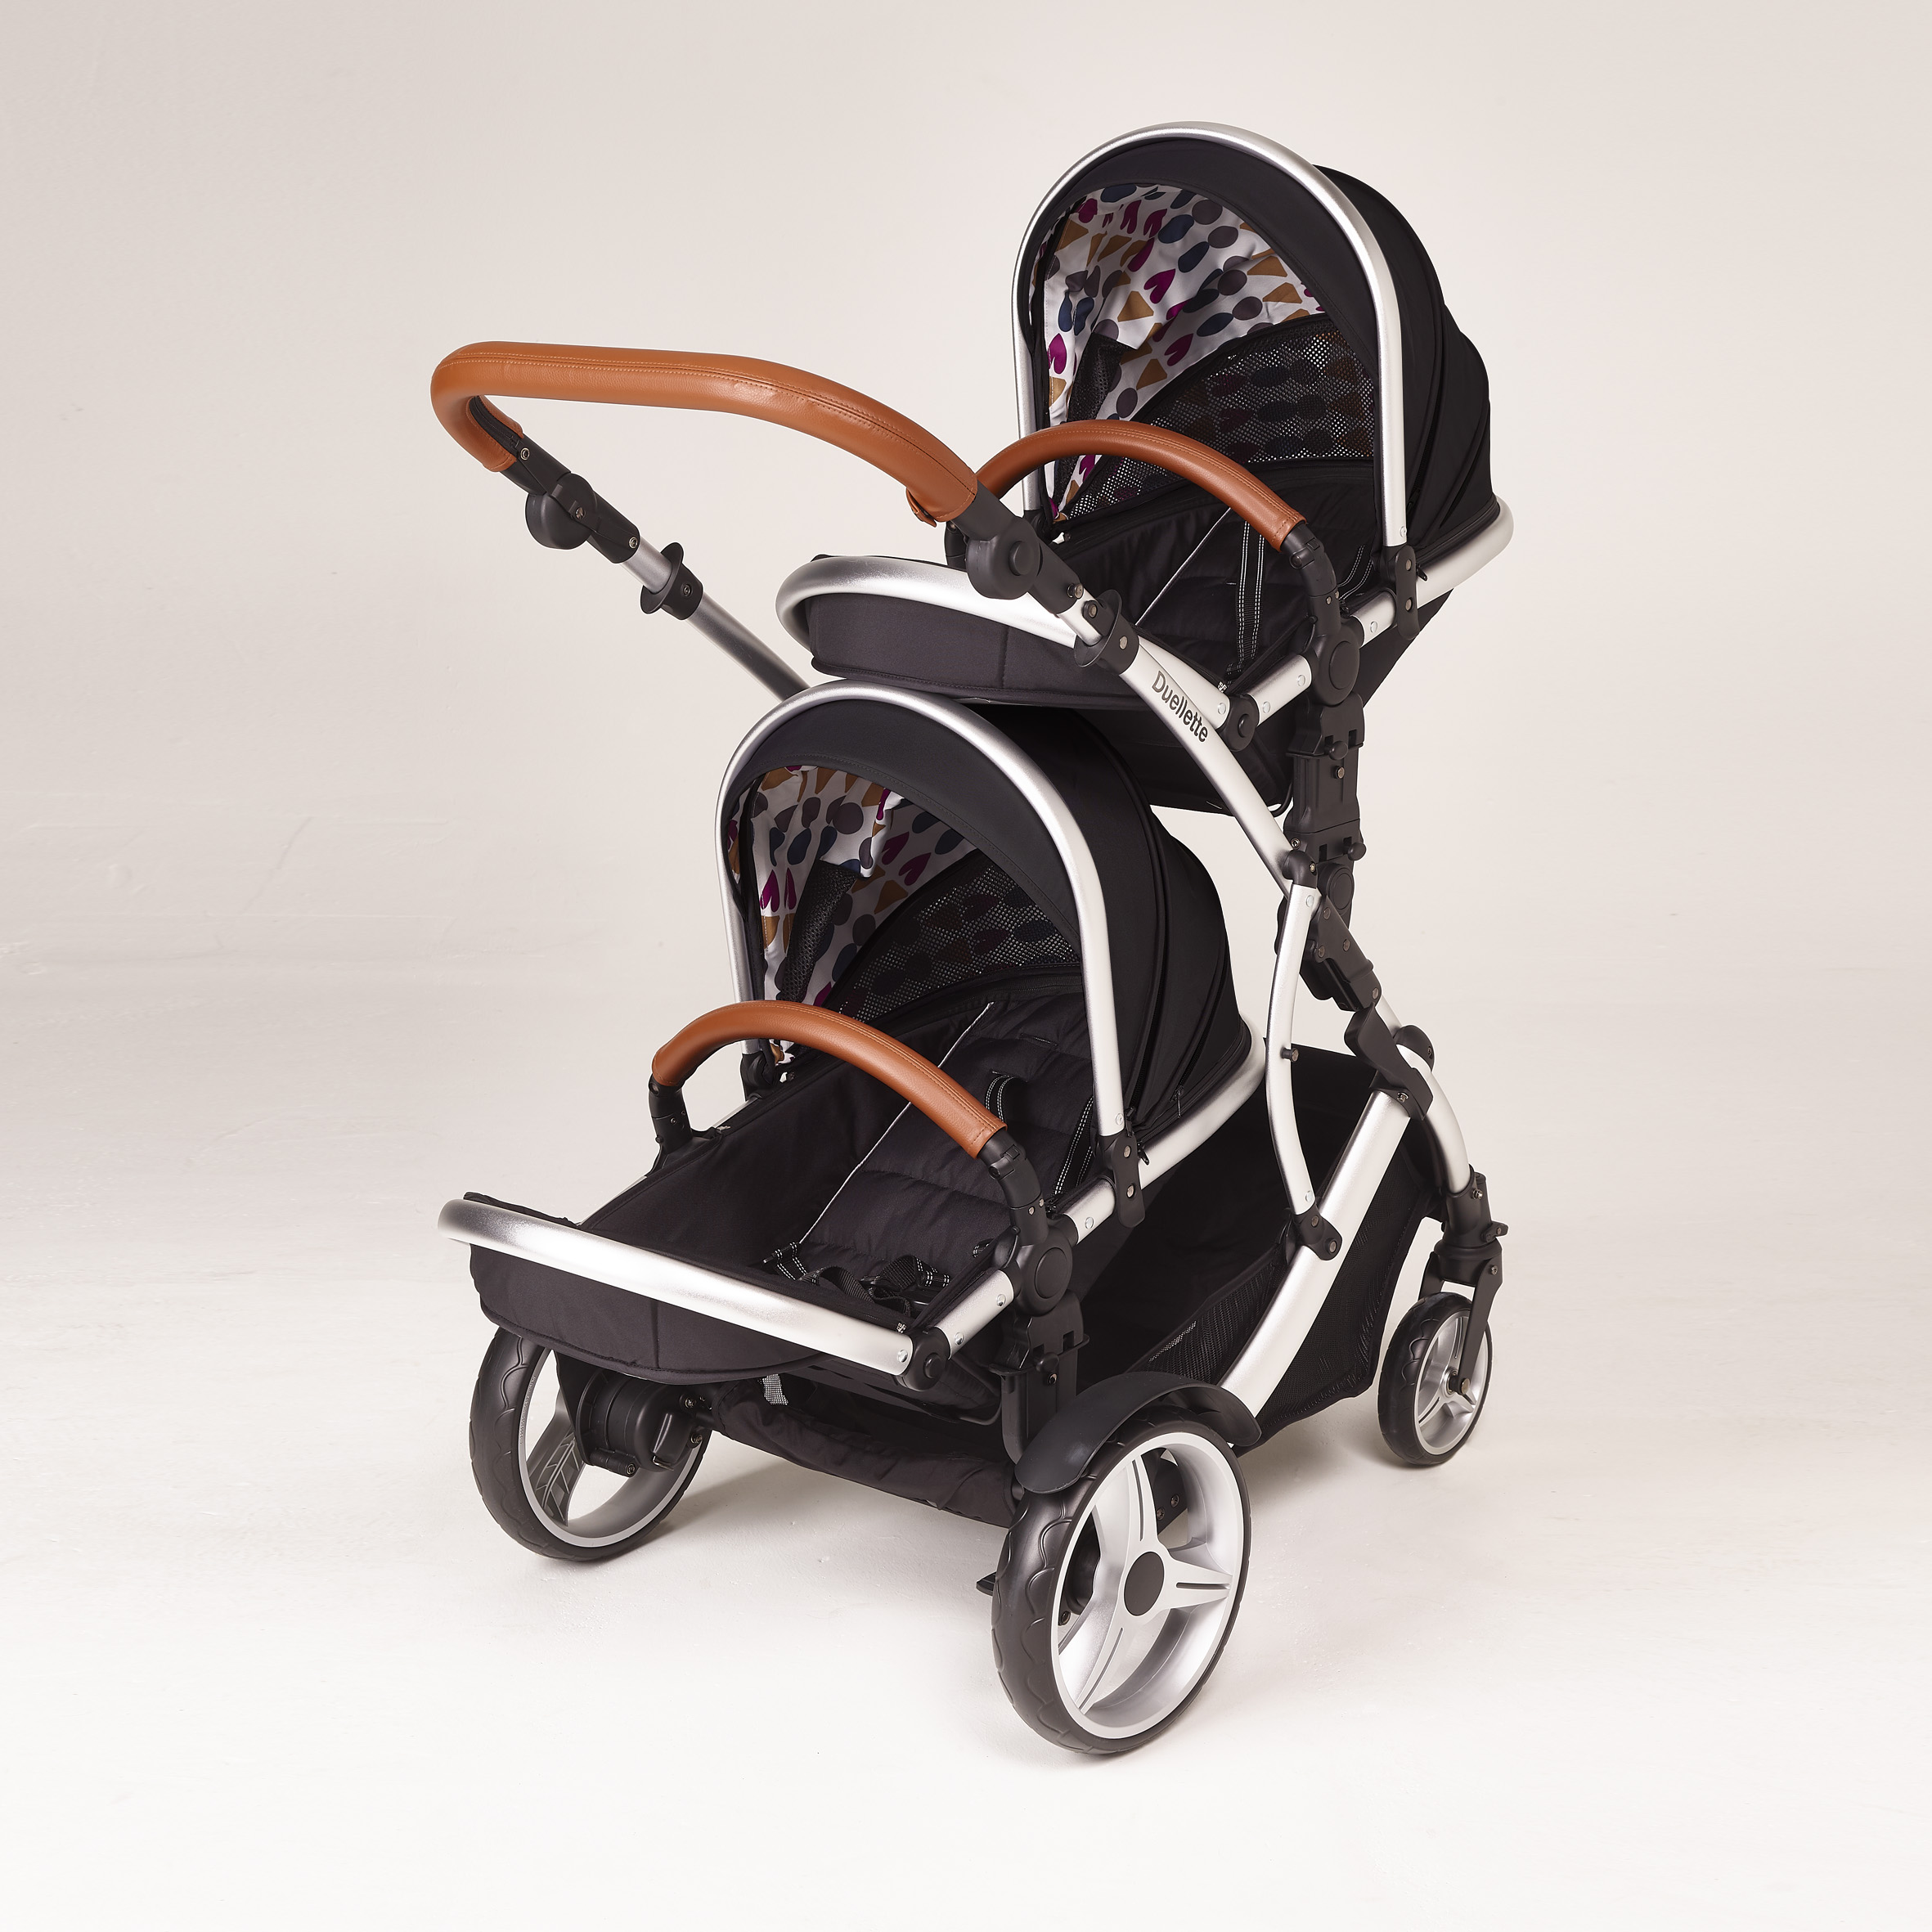 Travel System Tandem Stroller Double Pushchairs Prams And Travel Systems Image For Kids